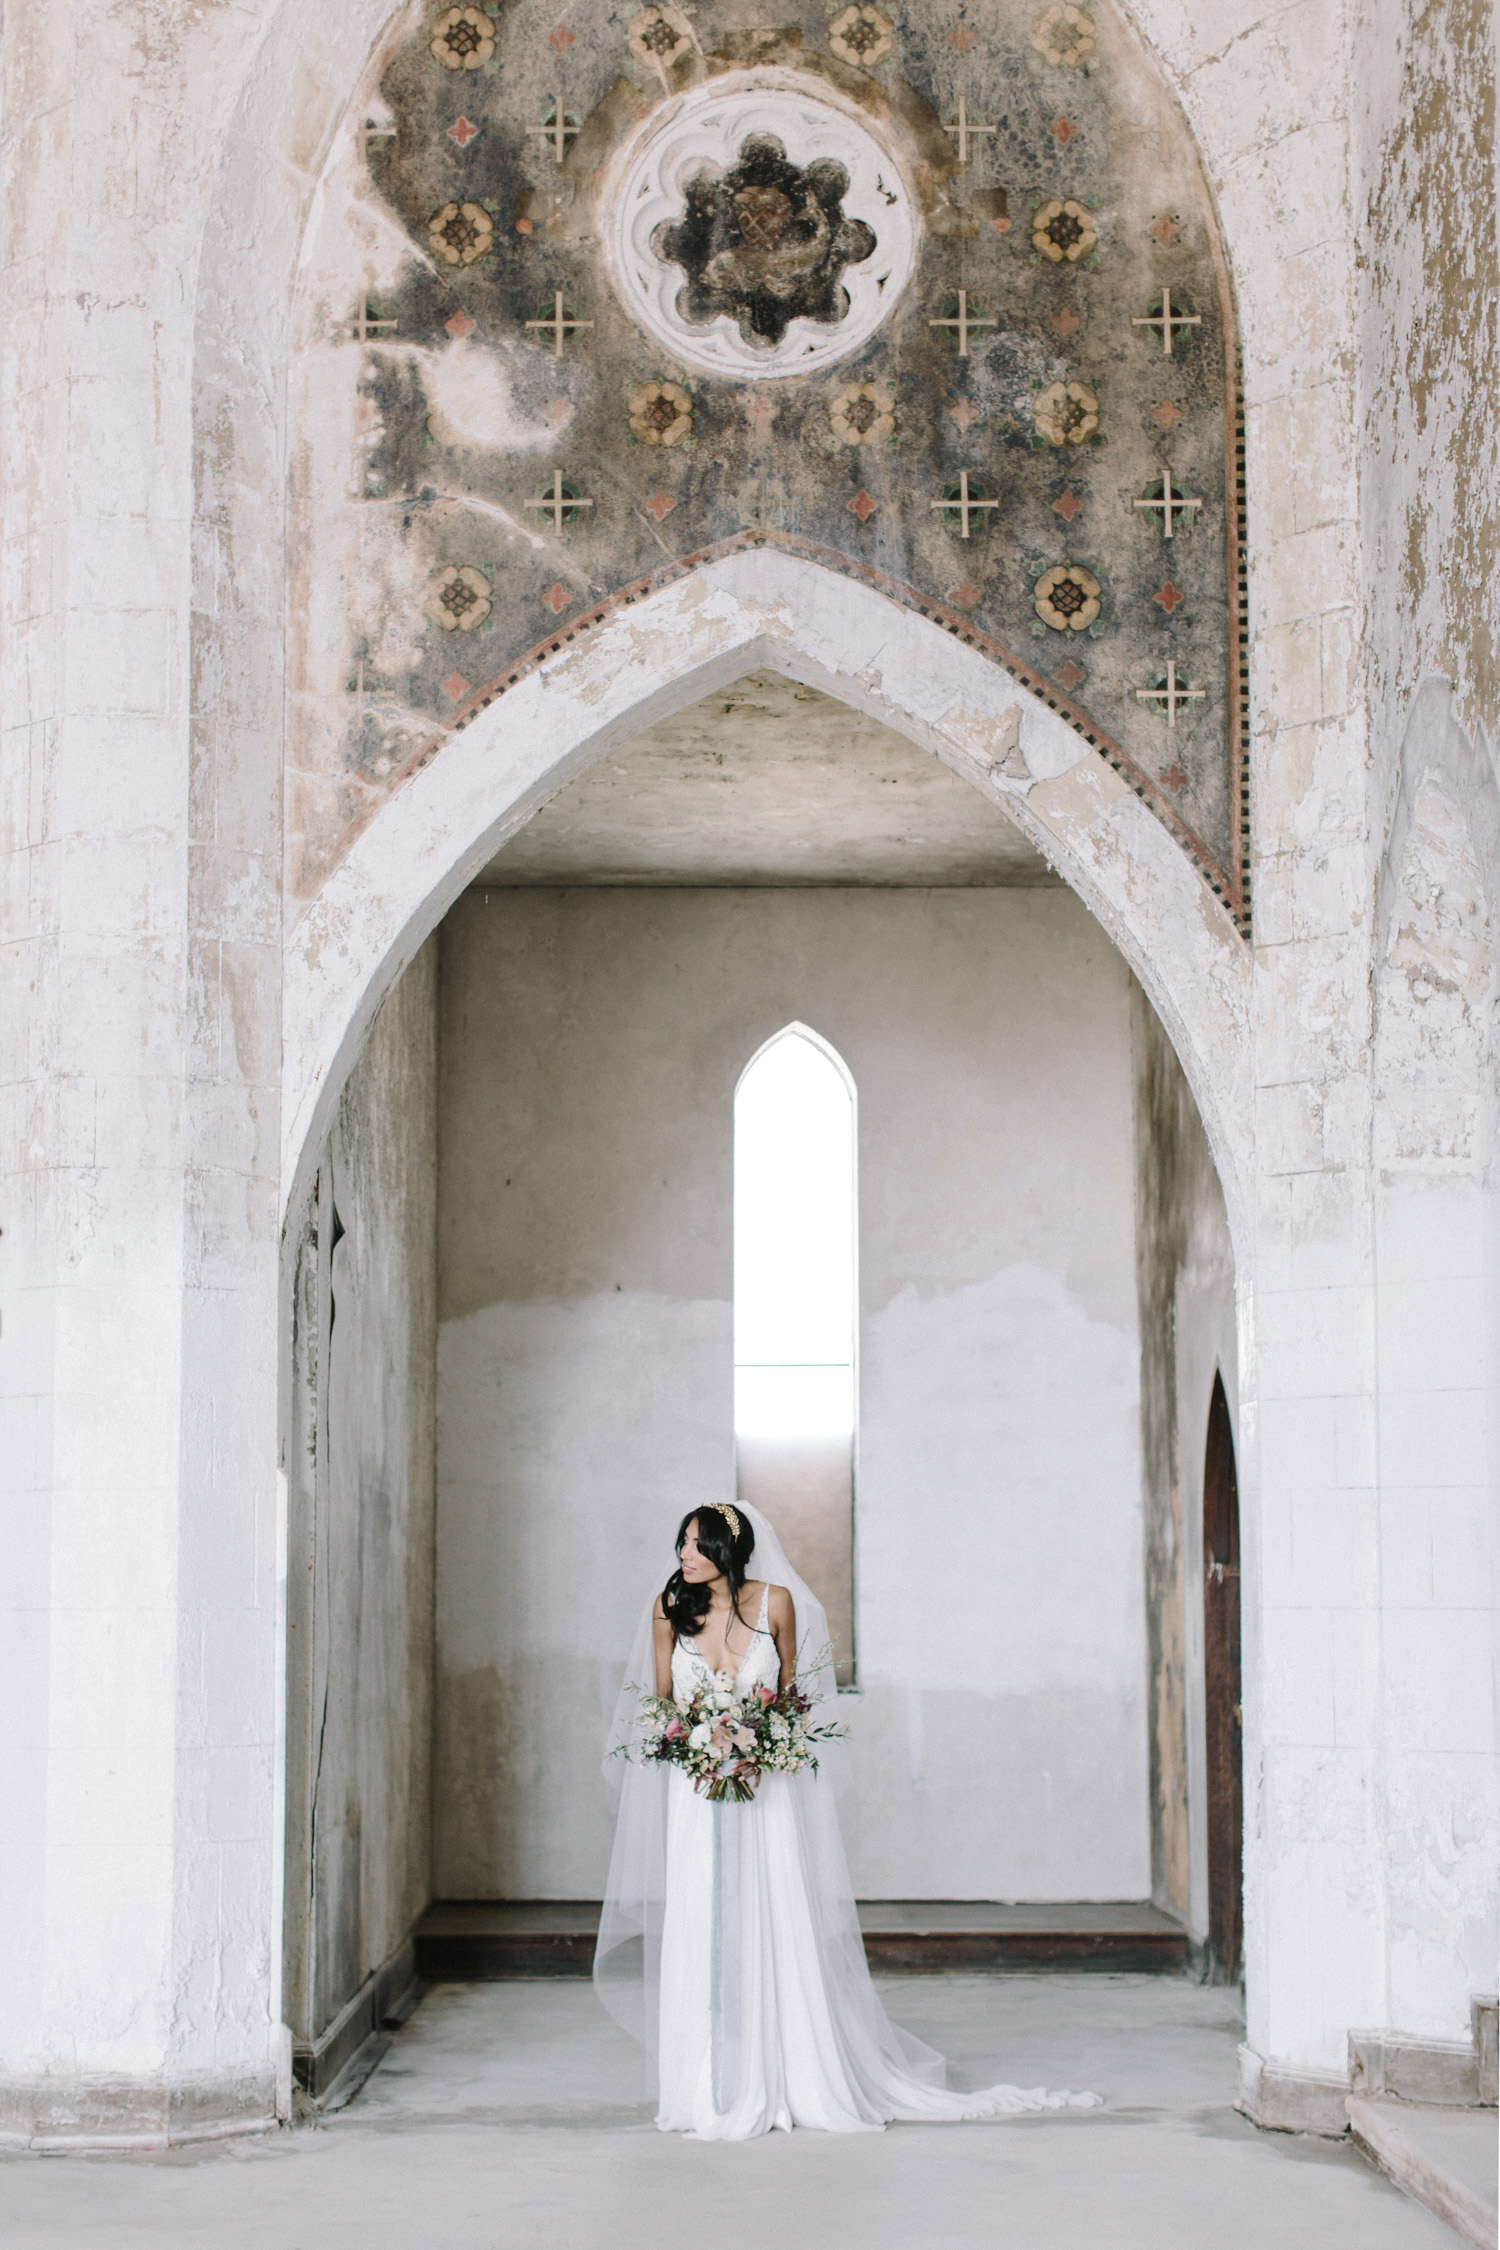 A bride peeks out from under a beautiful arch at her destination wedding in an abandoned cathedral